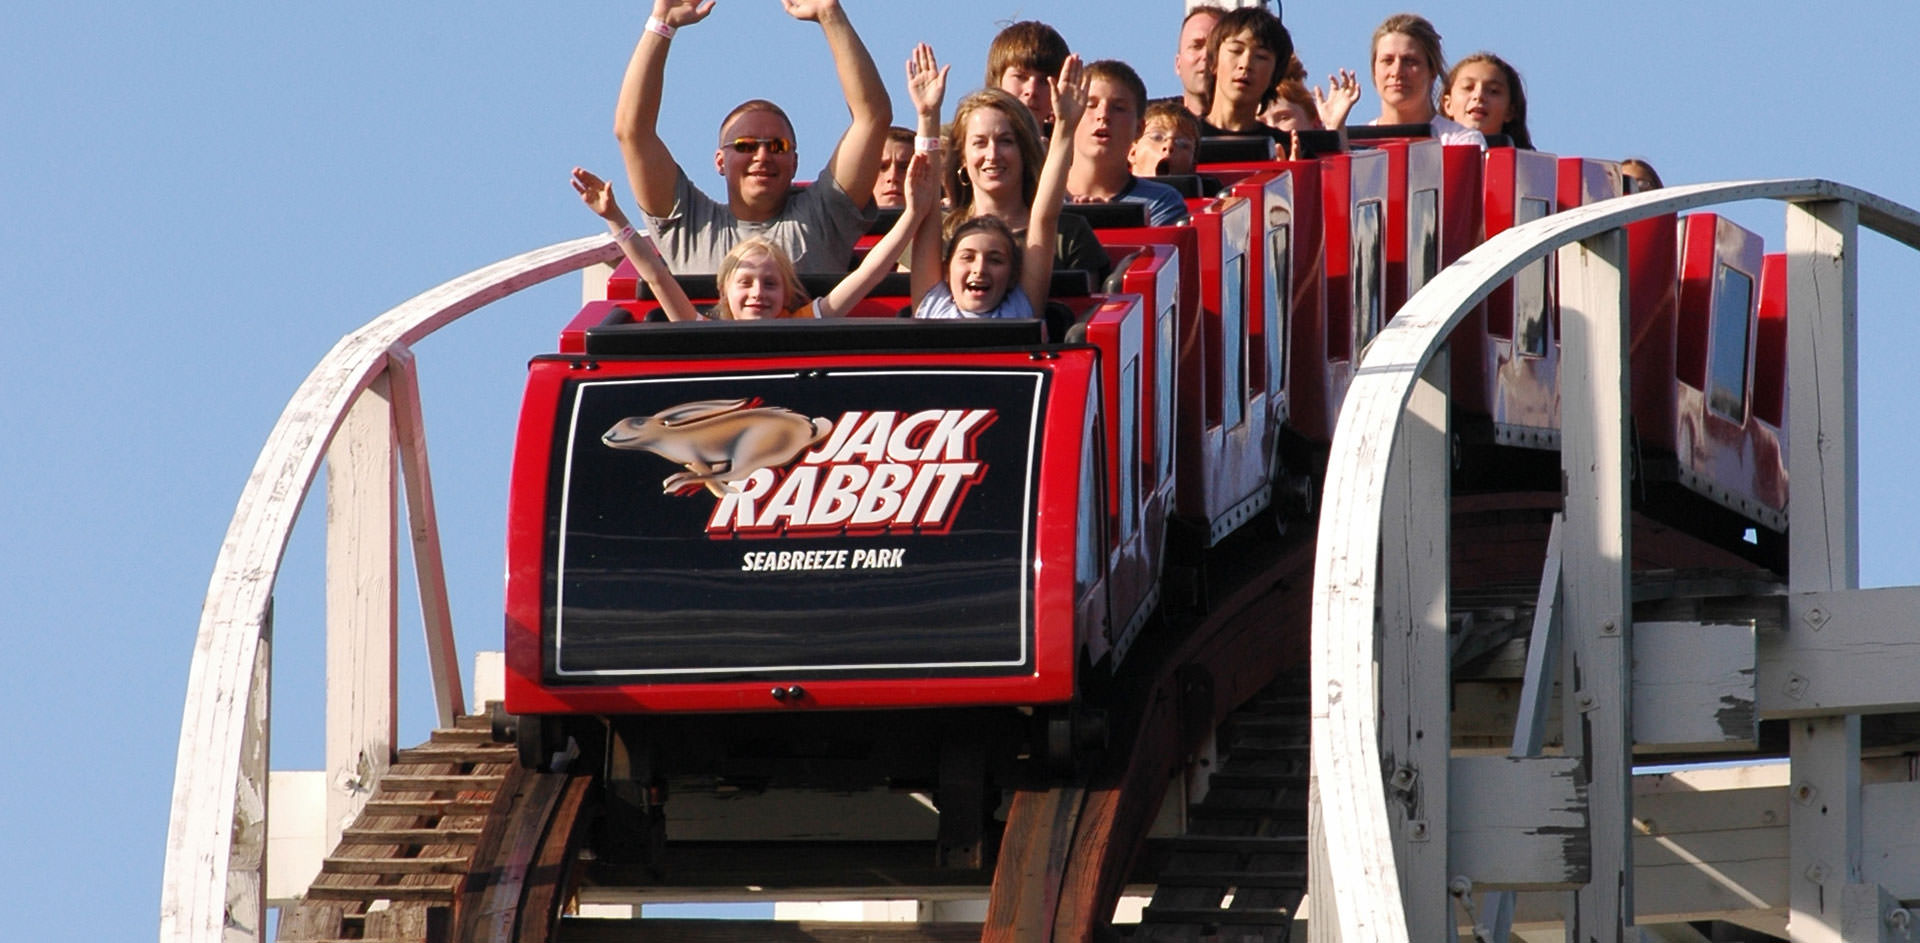 People riding the Jack Rabbit roller coaster ride